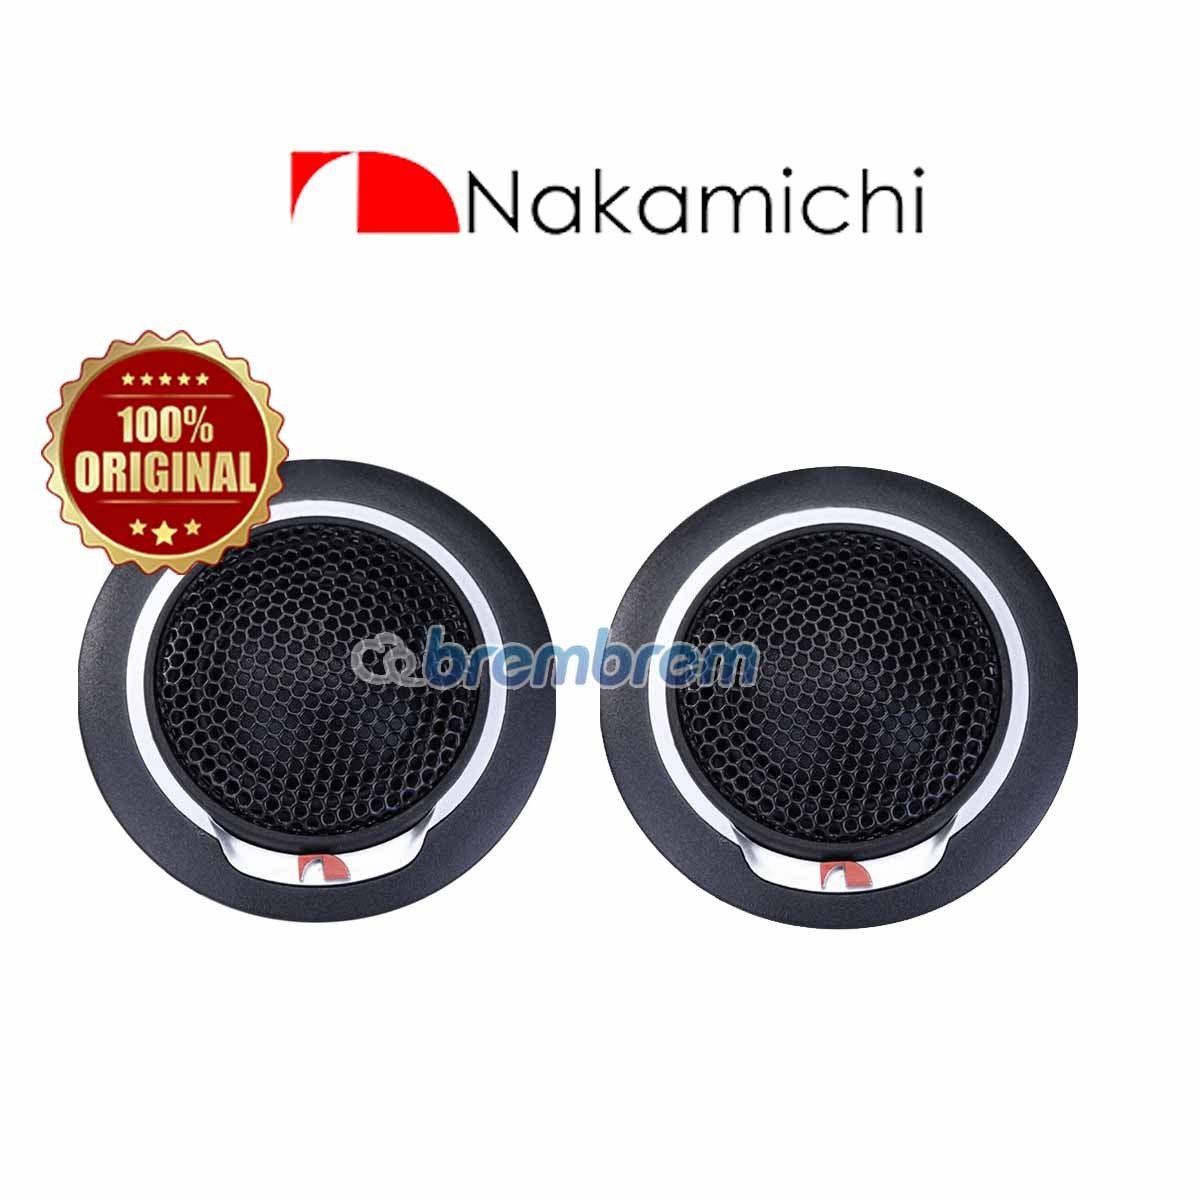 NAKAMICHI SP T25 - TWEETER